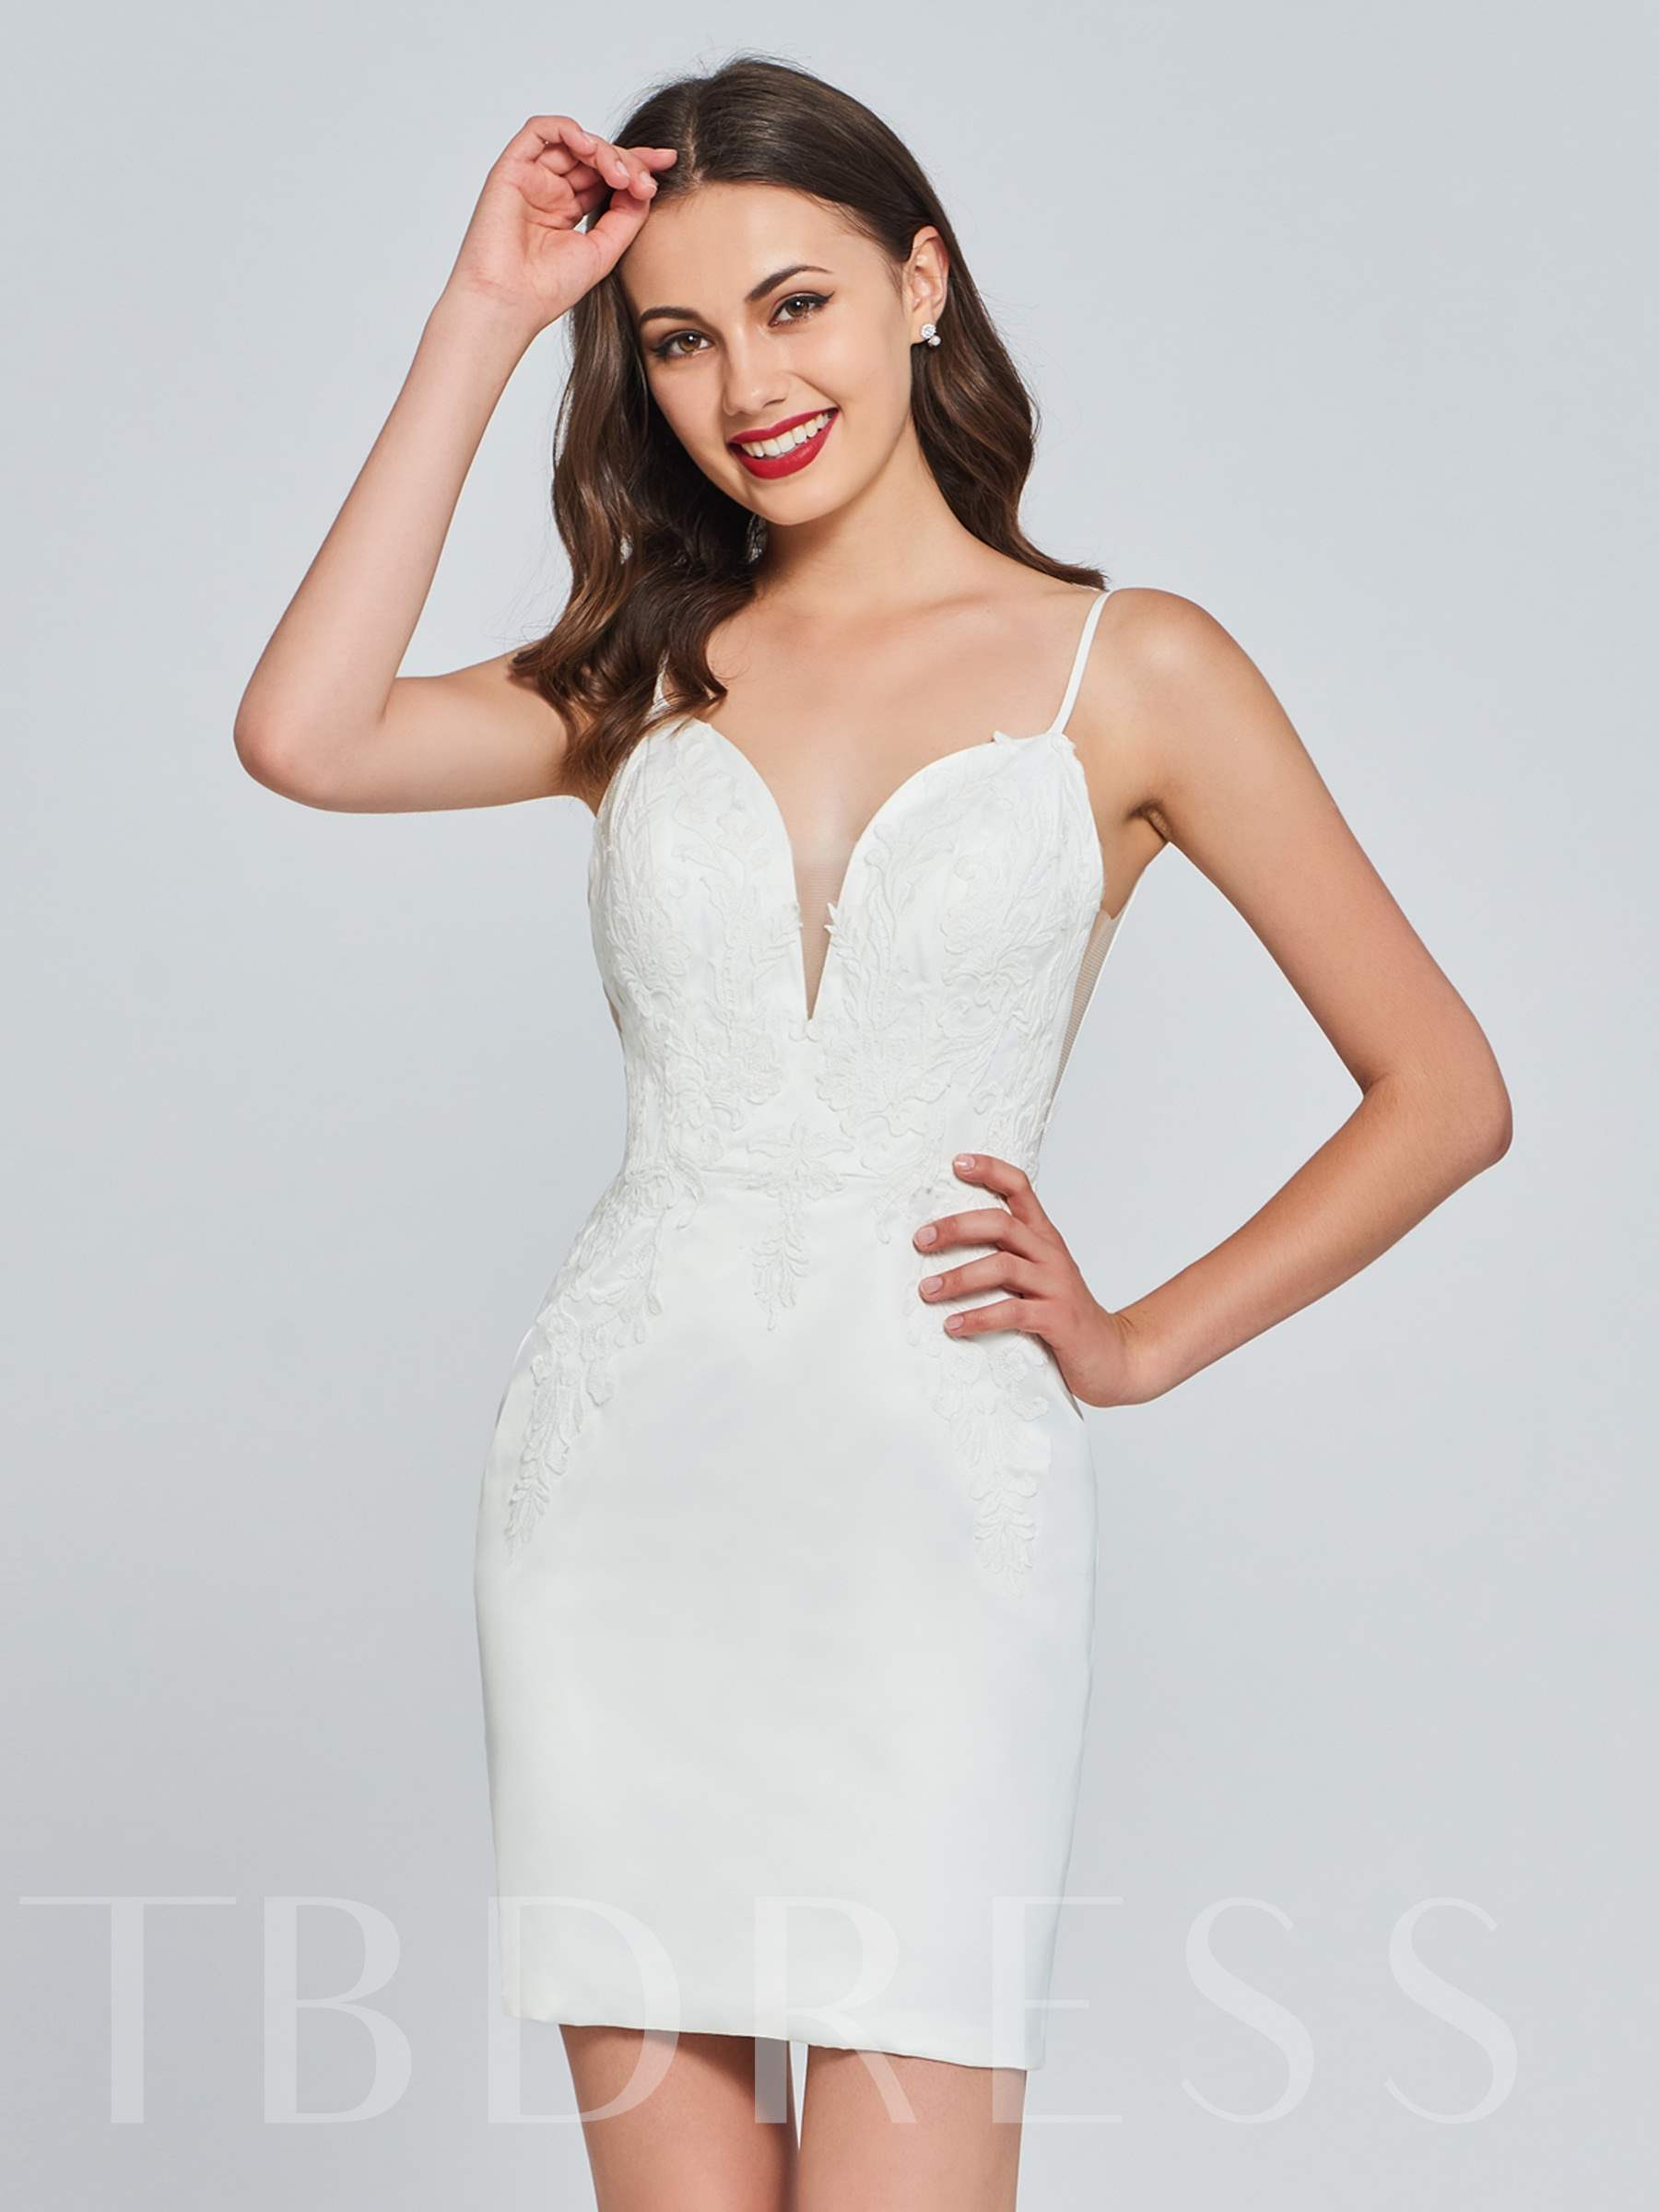 Sheath Spaghetti Straps Appliques Homecoming Dress, Spring,Summer,Fall,Winter, 13382177